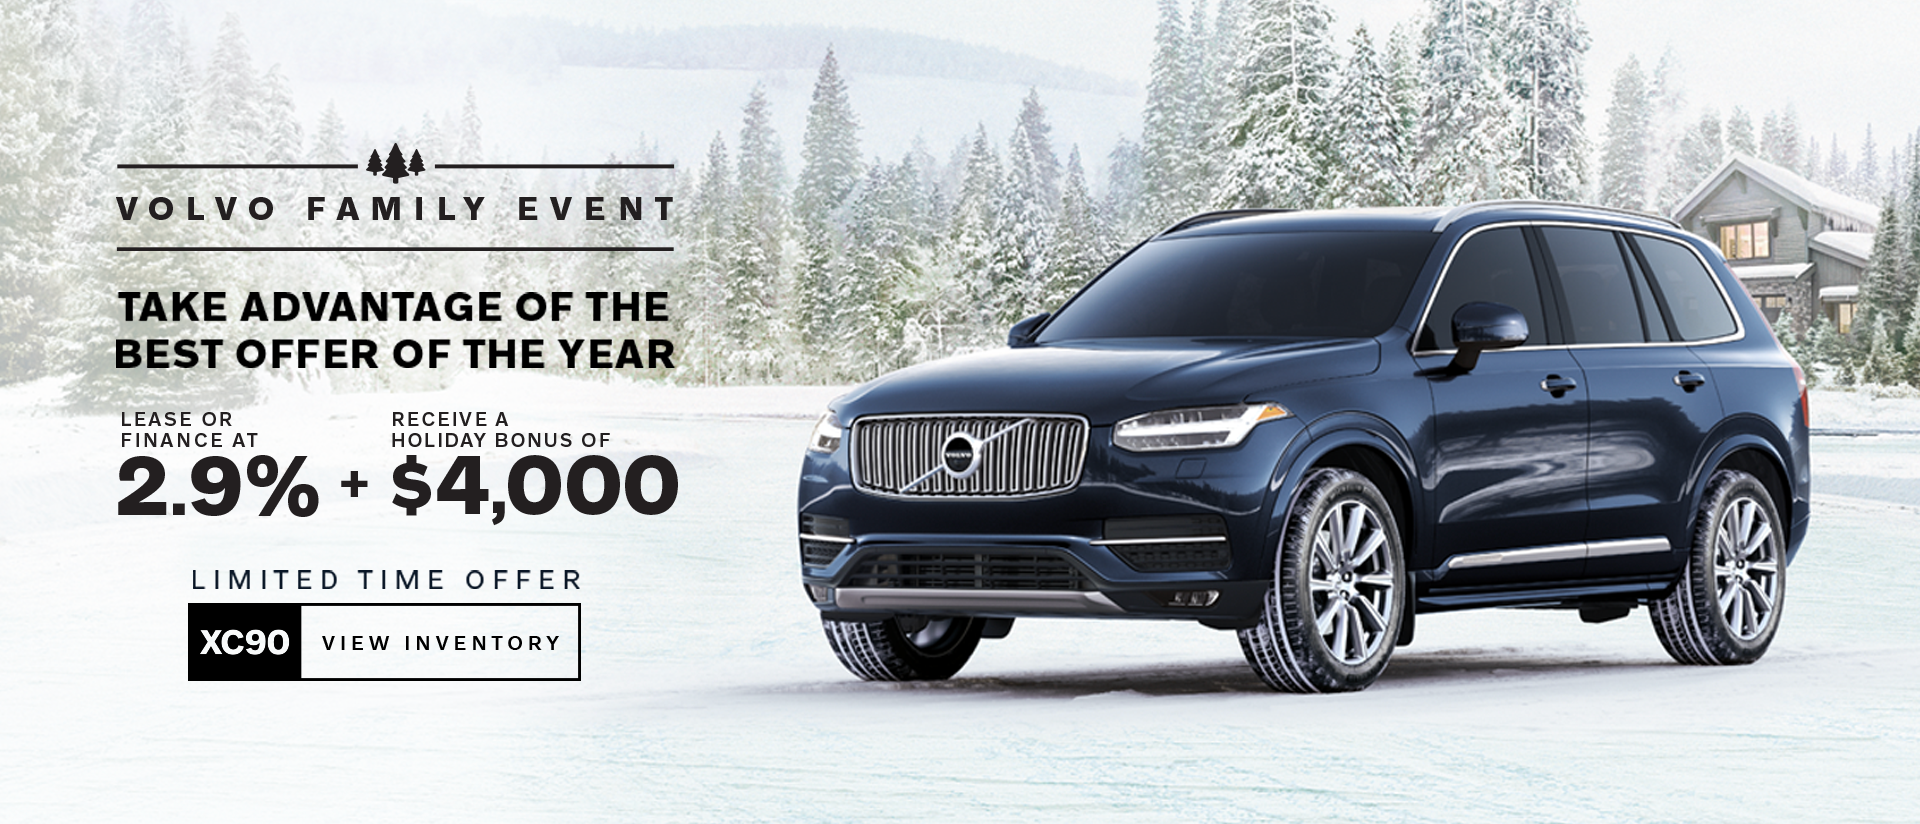 volvo family event banner blue suv in snow